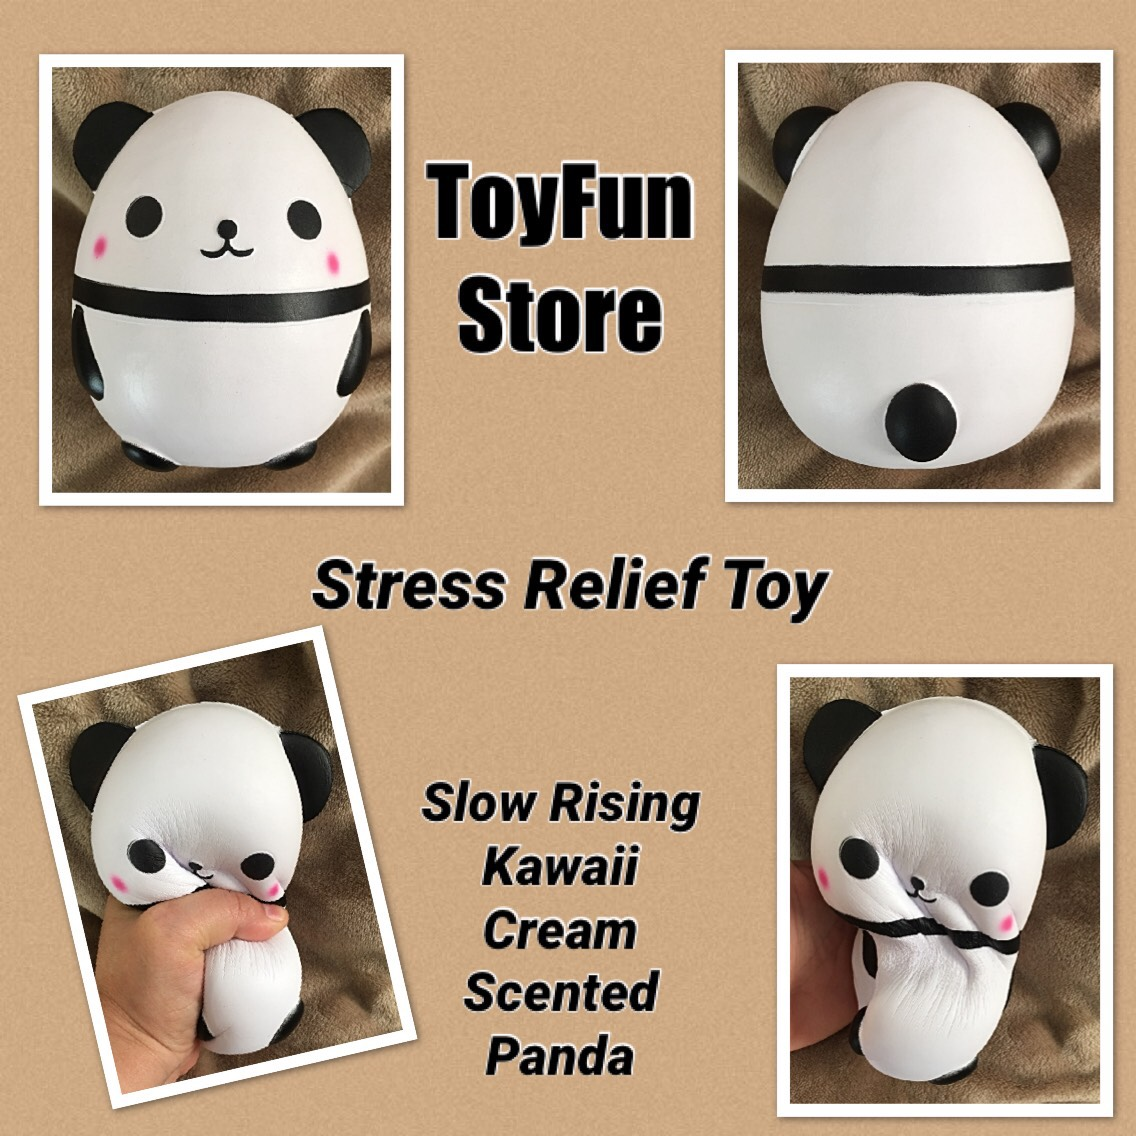 Squishy Toy, Animal Slow Rising Stress Relief Toy Kawaii Cream Scented Doll Guft For Kids Adults (One Panda) - By - ToyFun